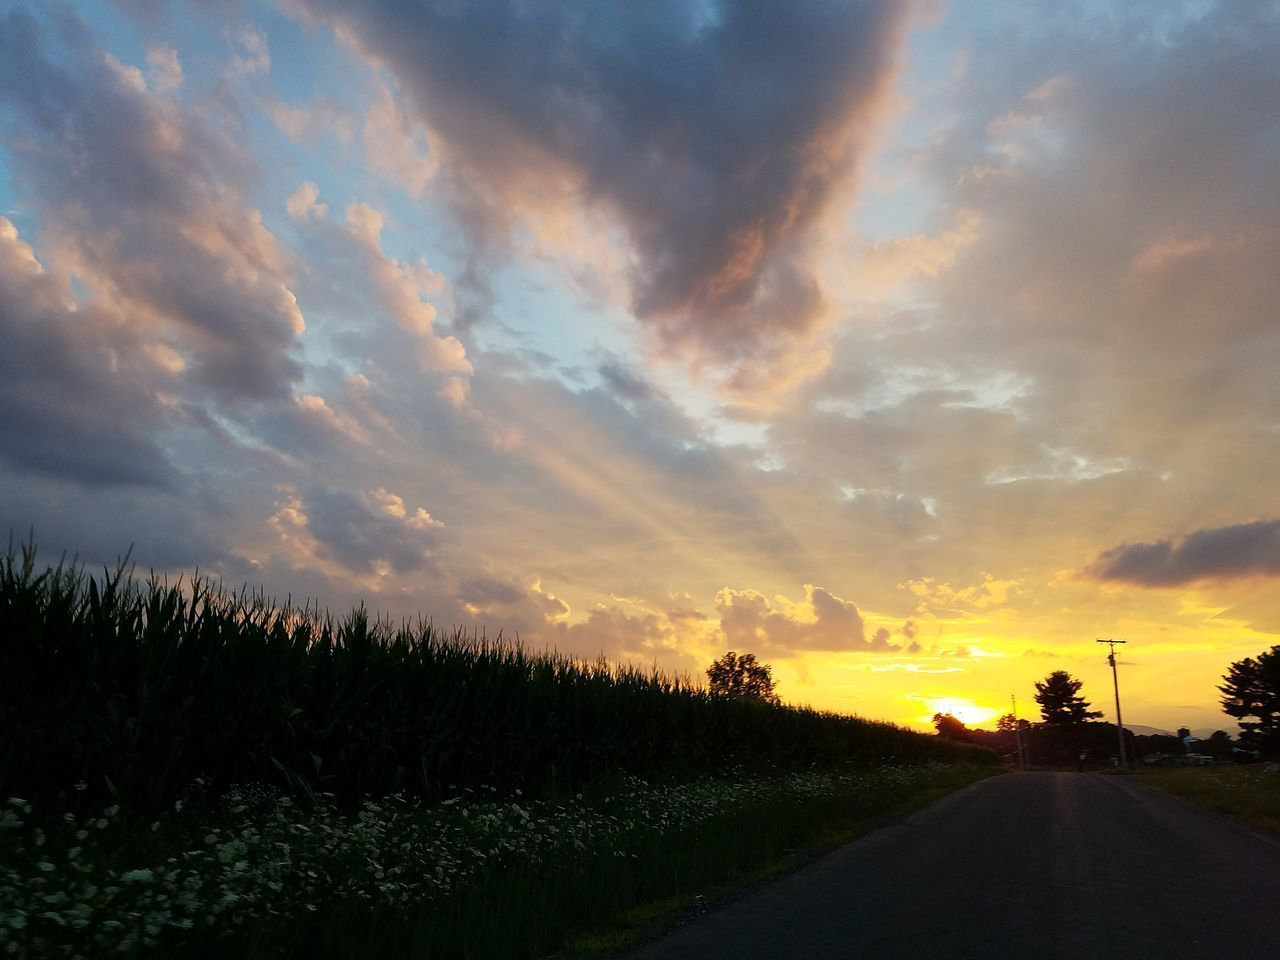 sunset, road, sky, the way forward, cloud - sky, scenics, nature, transportation, tranquil scene, beauty in nature, tree, tranquility, no people, silhouette, outdoors, landscape, growth, day